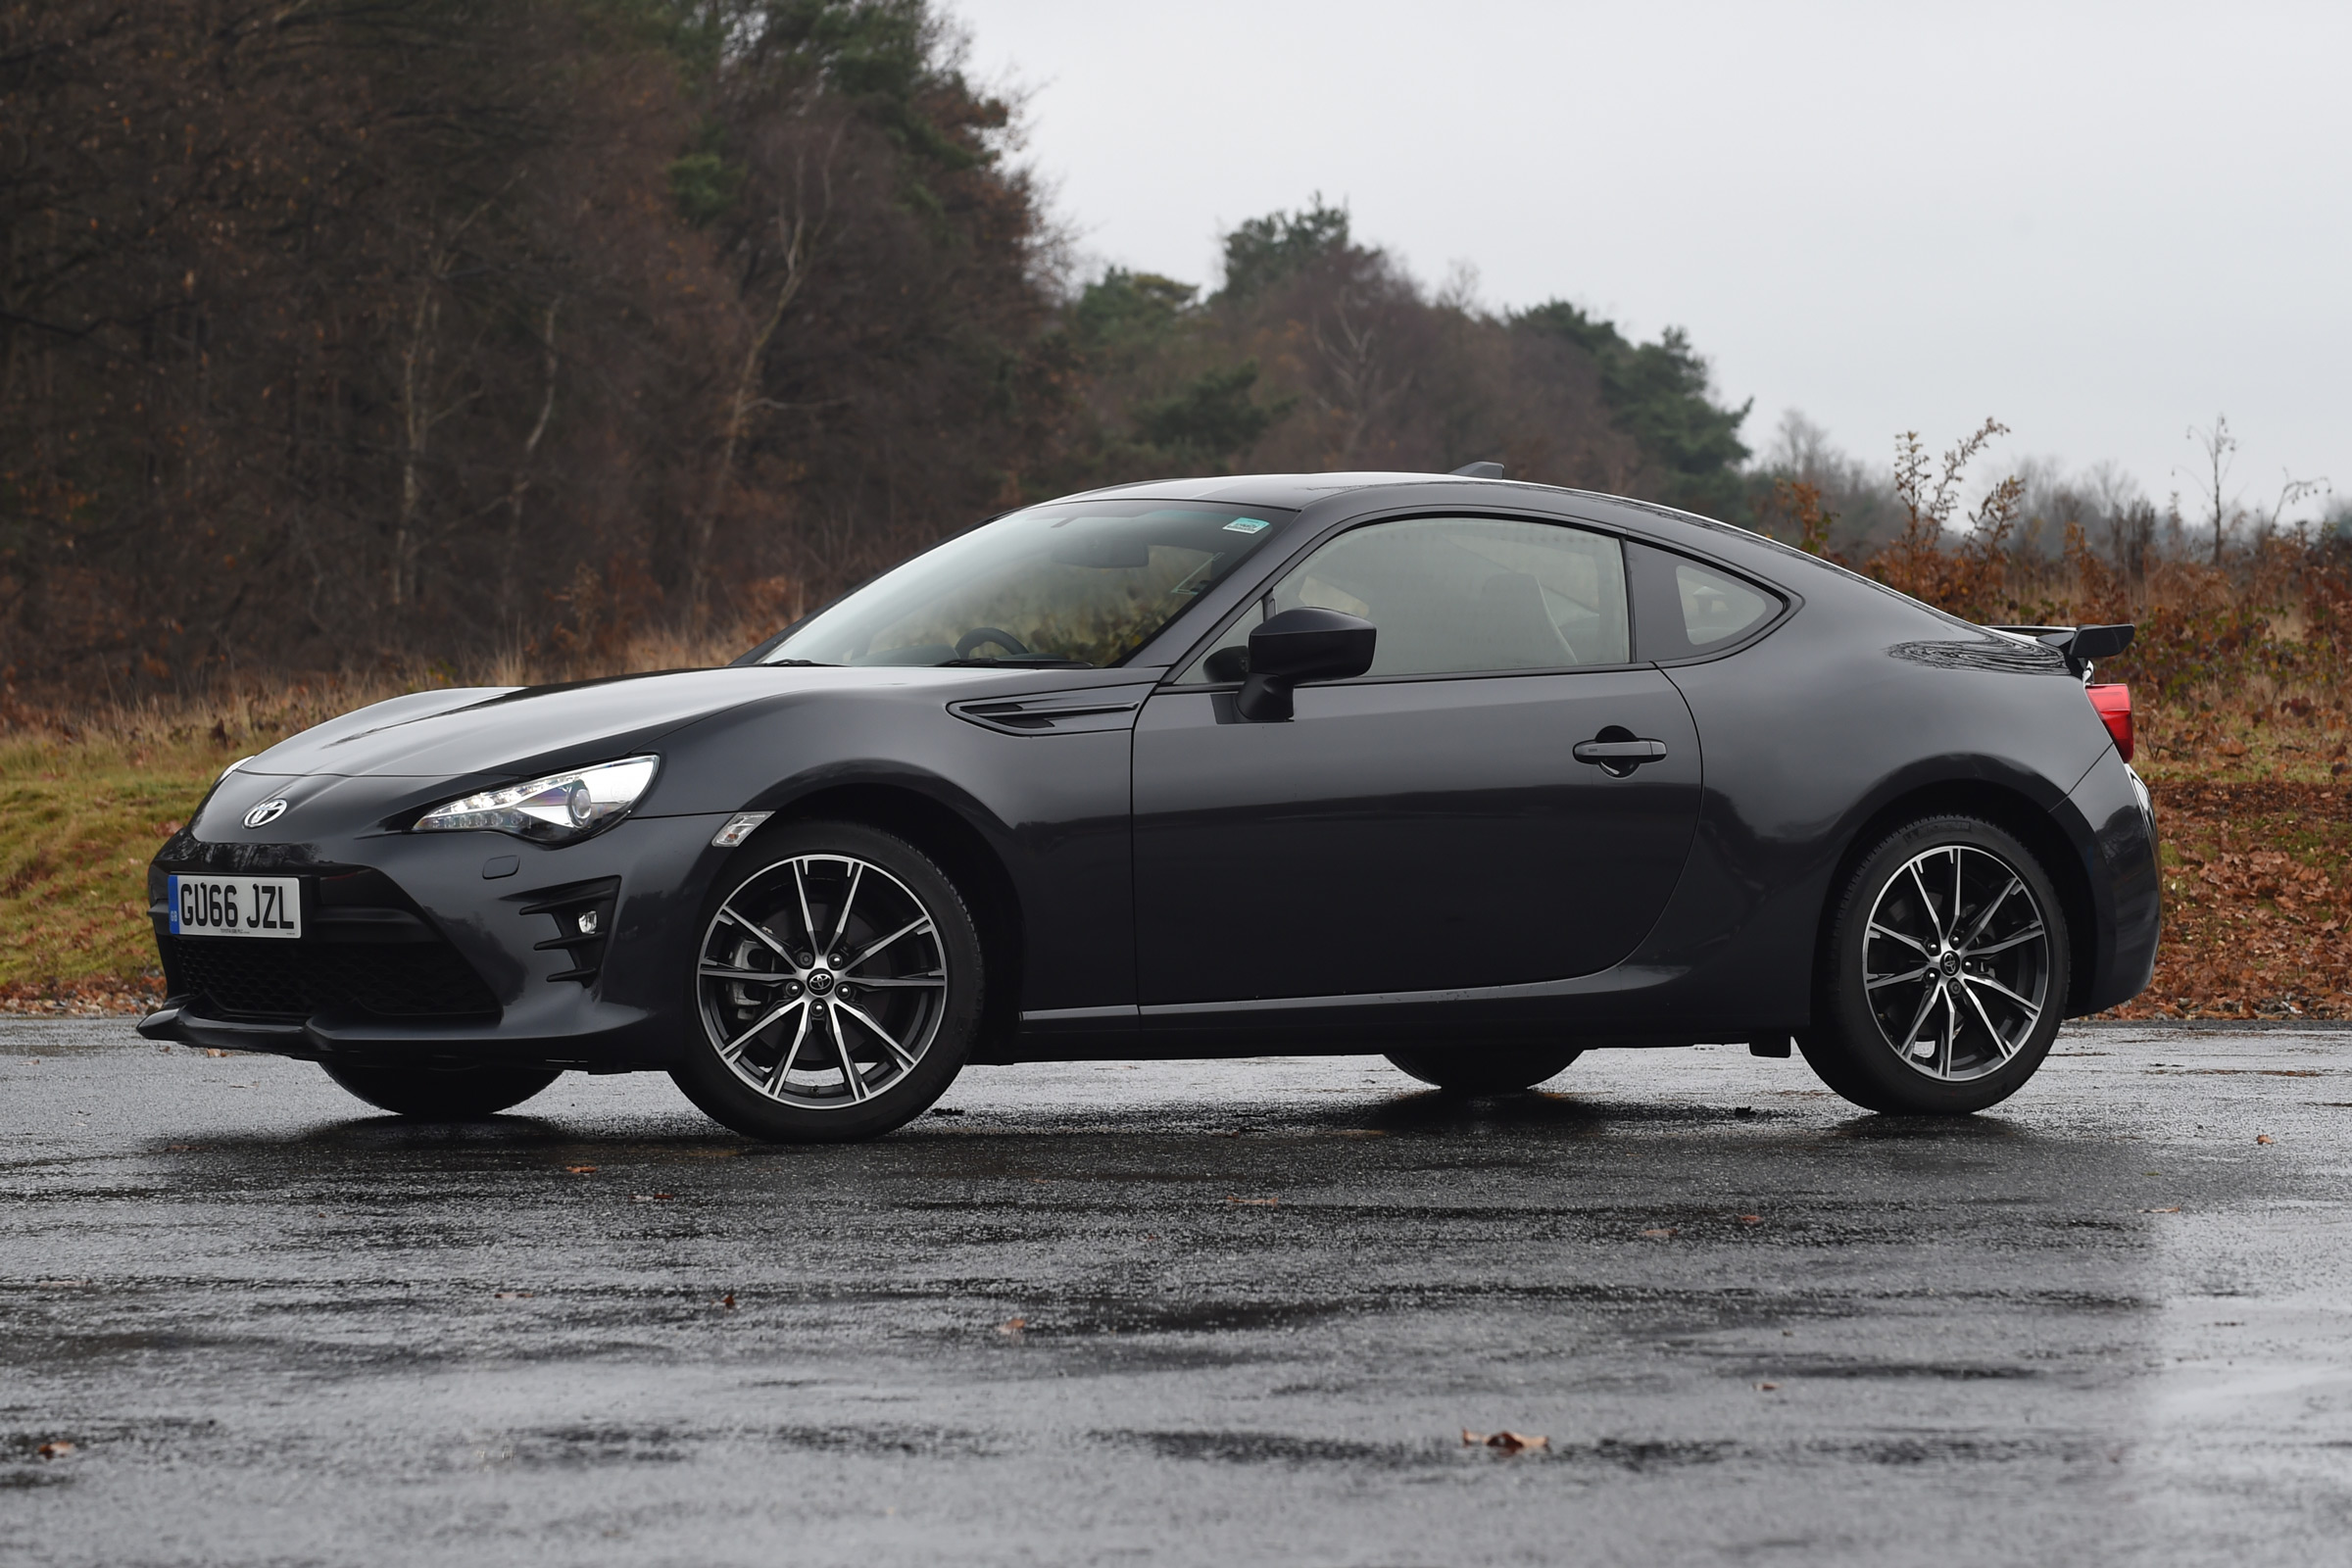 2017 Toyota GT86 Black Exterior Front And Side (View 11 of 13)